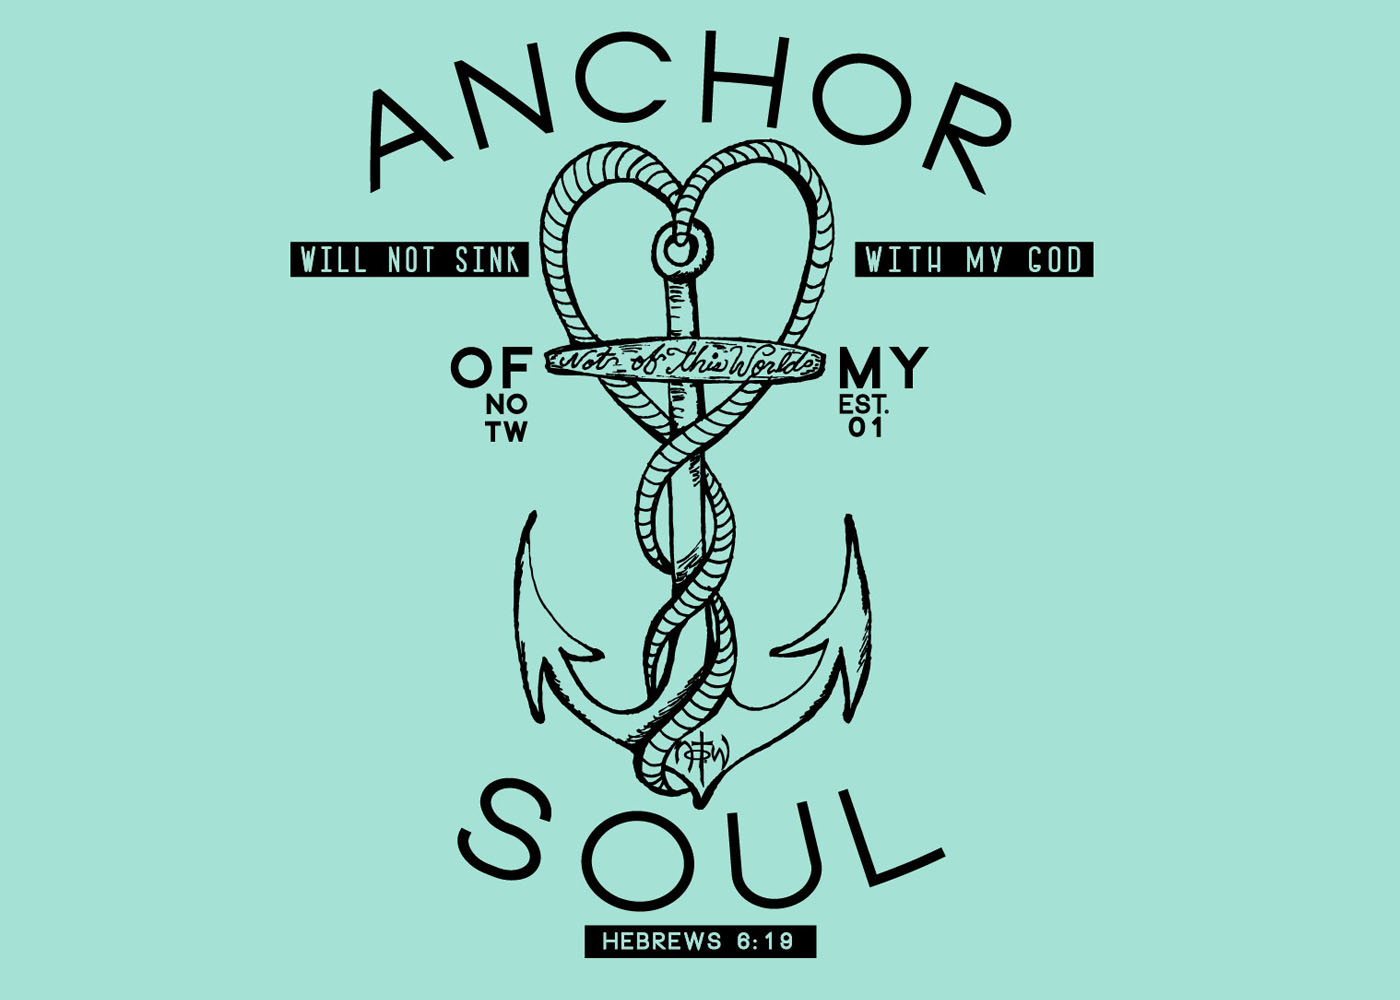 Anchor Wallpaper Tumblr Cute Anchor Wallpapers Tumblr 1400x1000